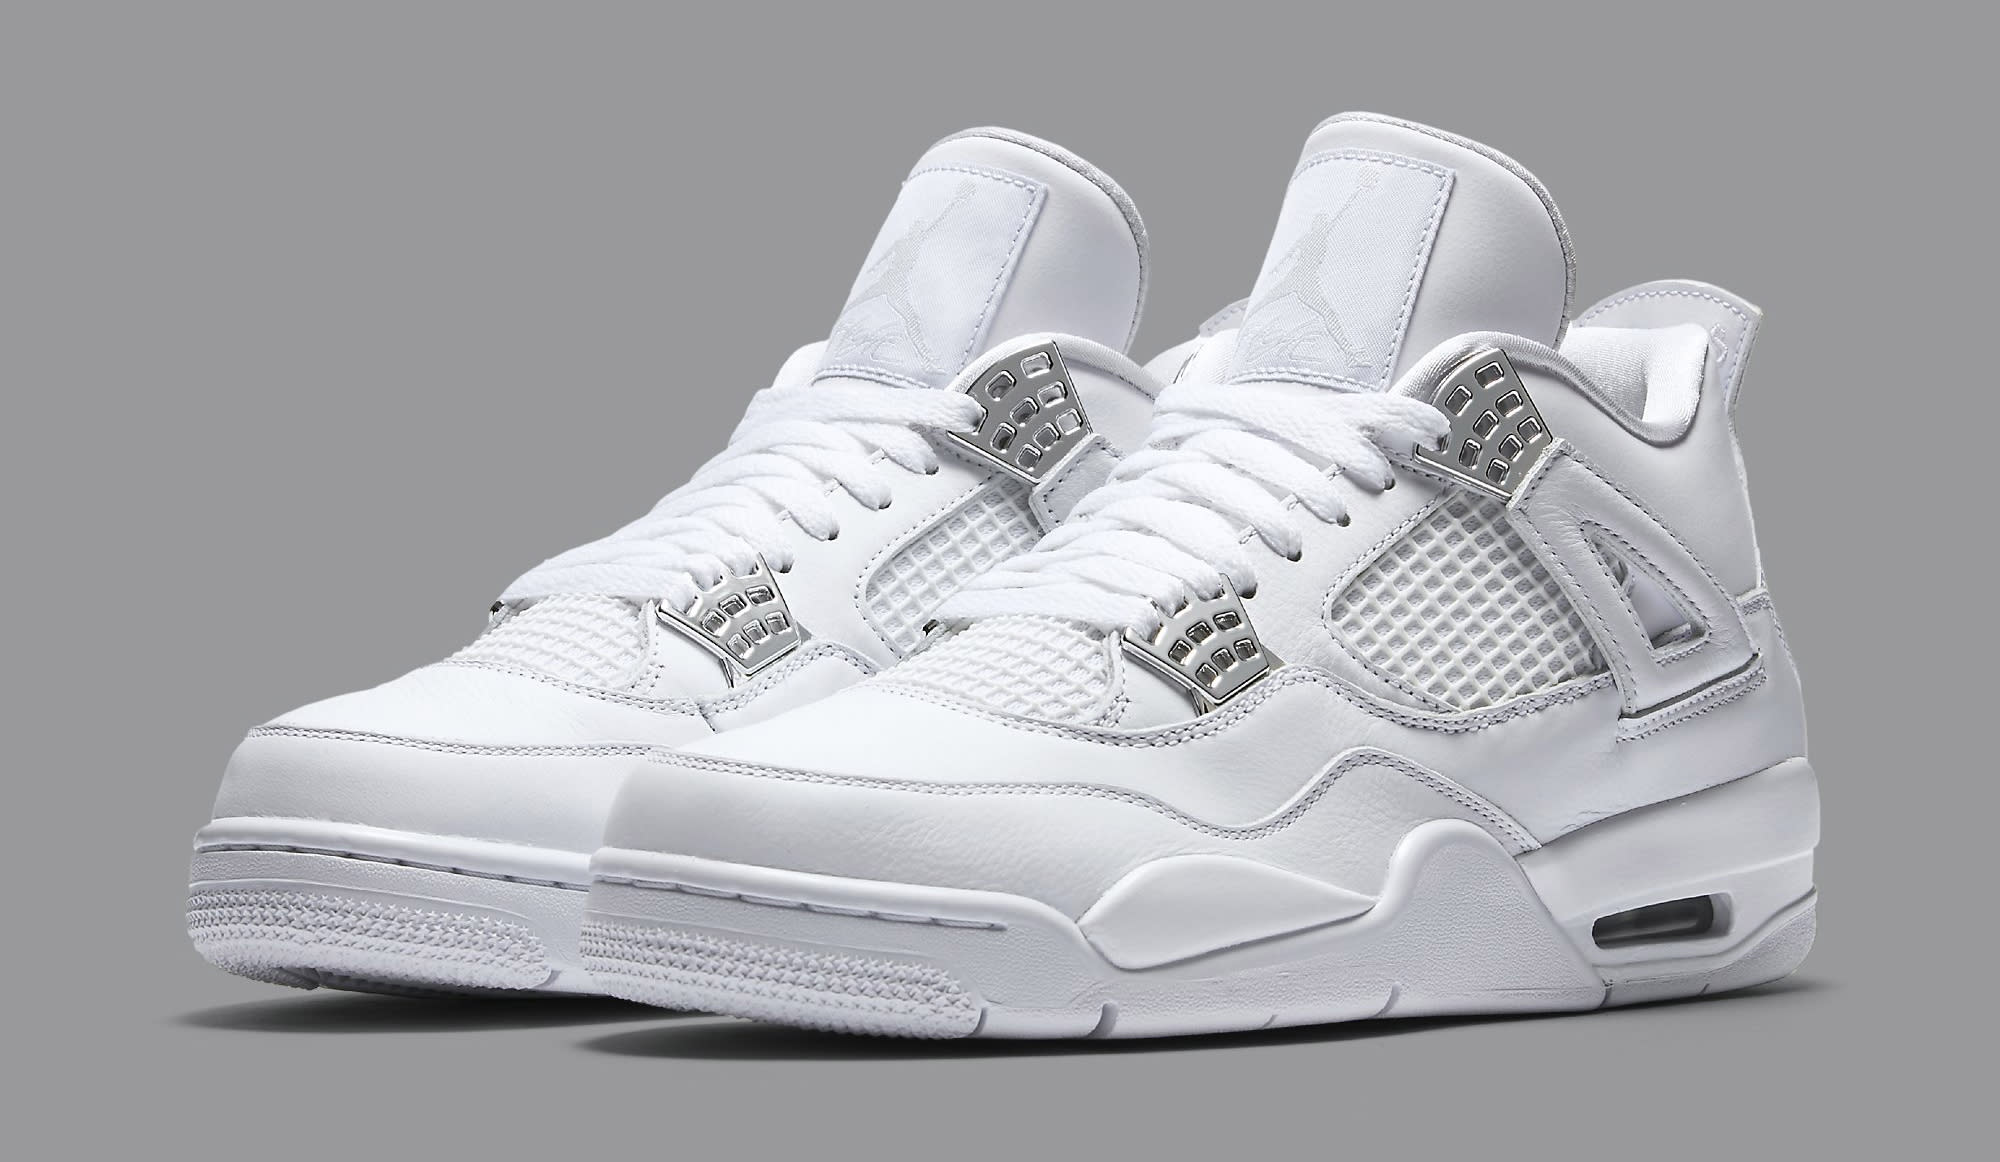 dc2e74dad7c0e4 Pure Money Air Jordan 4 2017 Release Date 308497-100